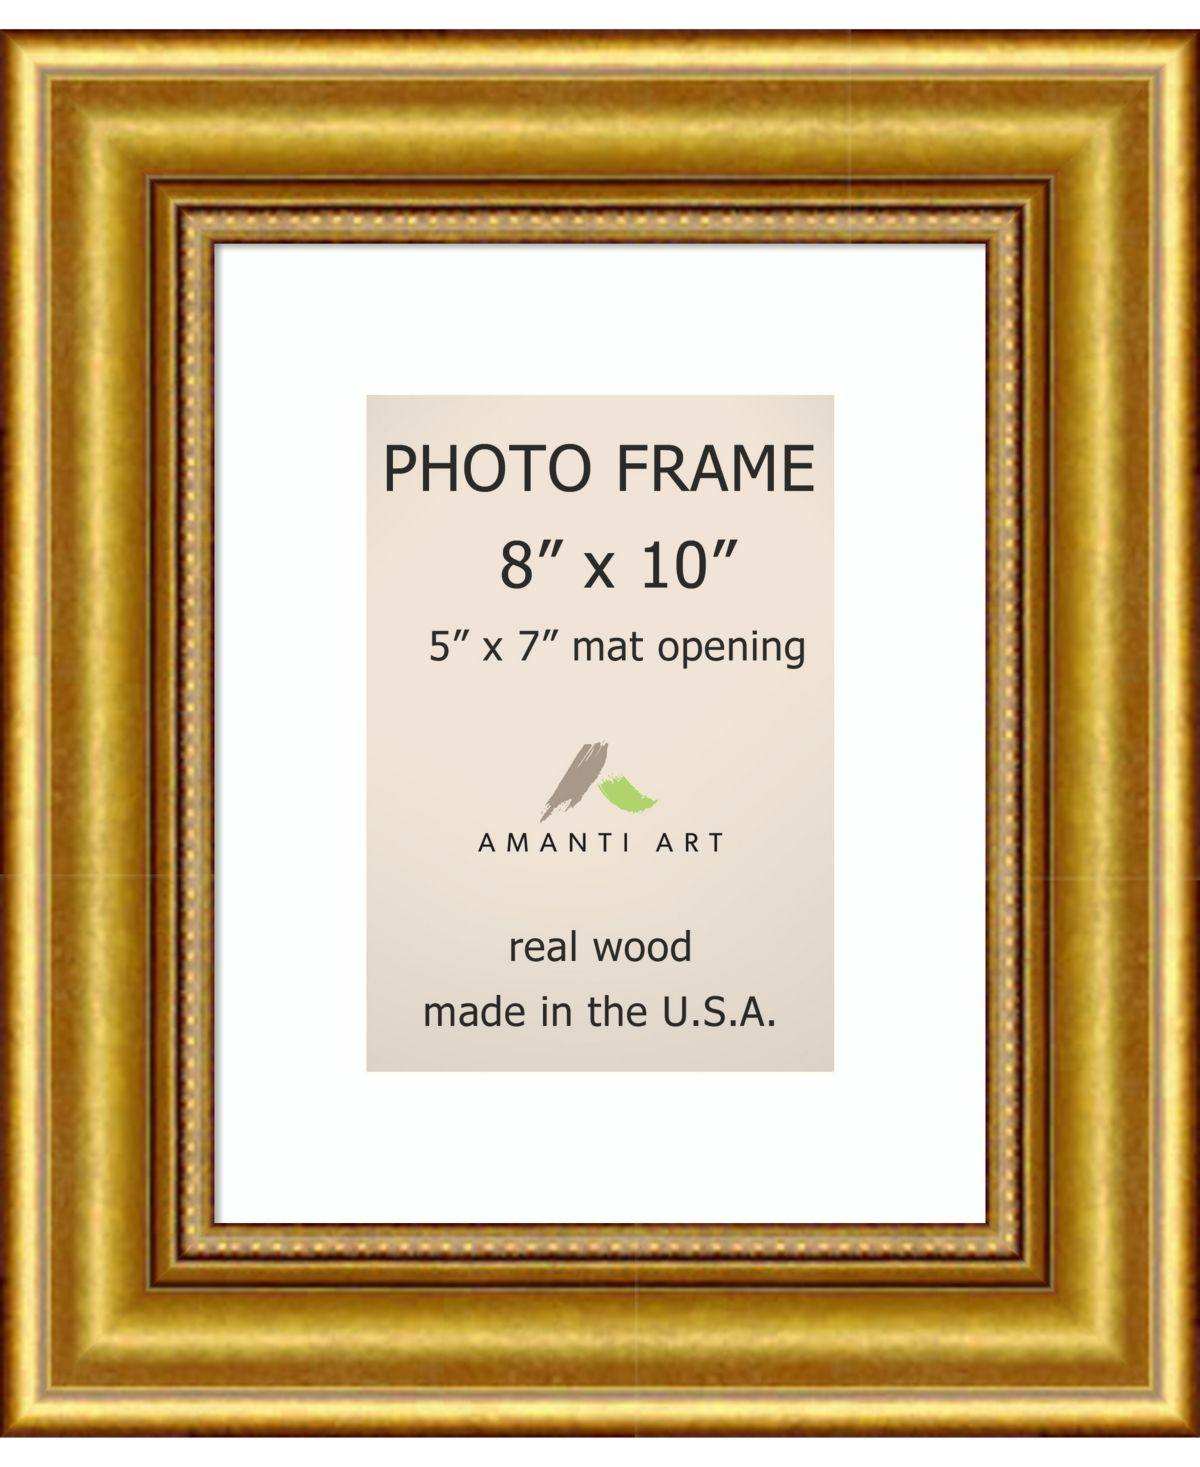 Amanti Art Townhouse Gold 8 X 10 Matted To 5 X 7 Opening Wall Picture Photo Frame Amanti Art Photo Frame Picture Wall